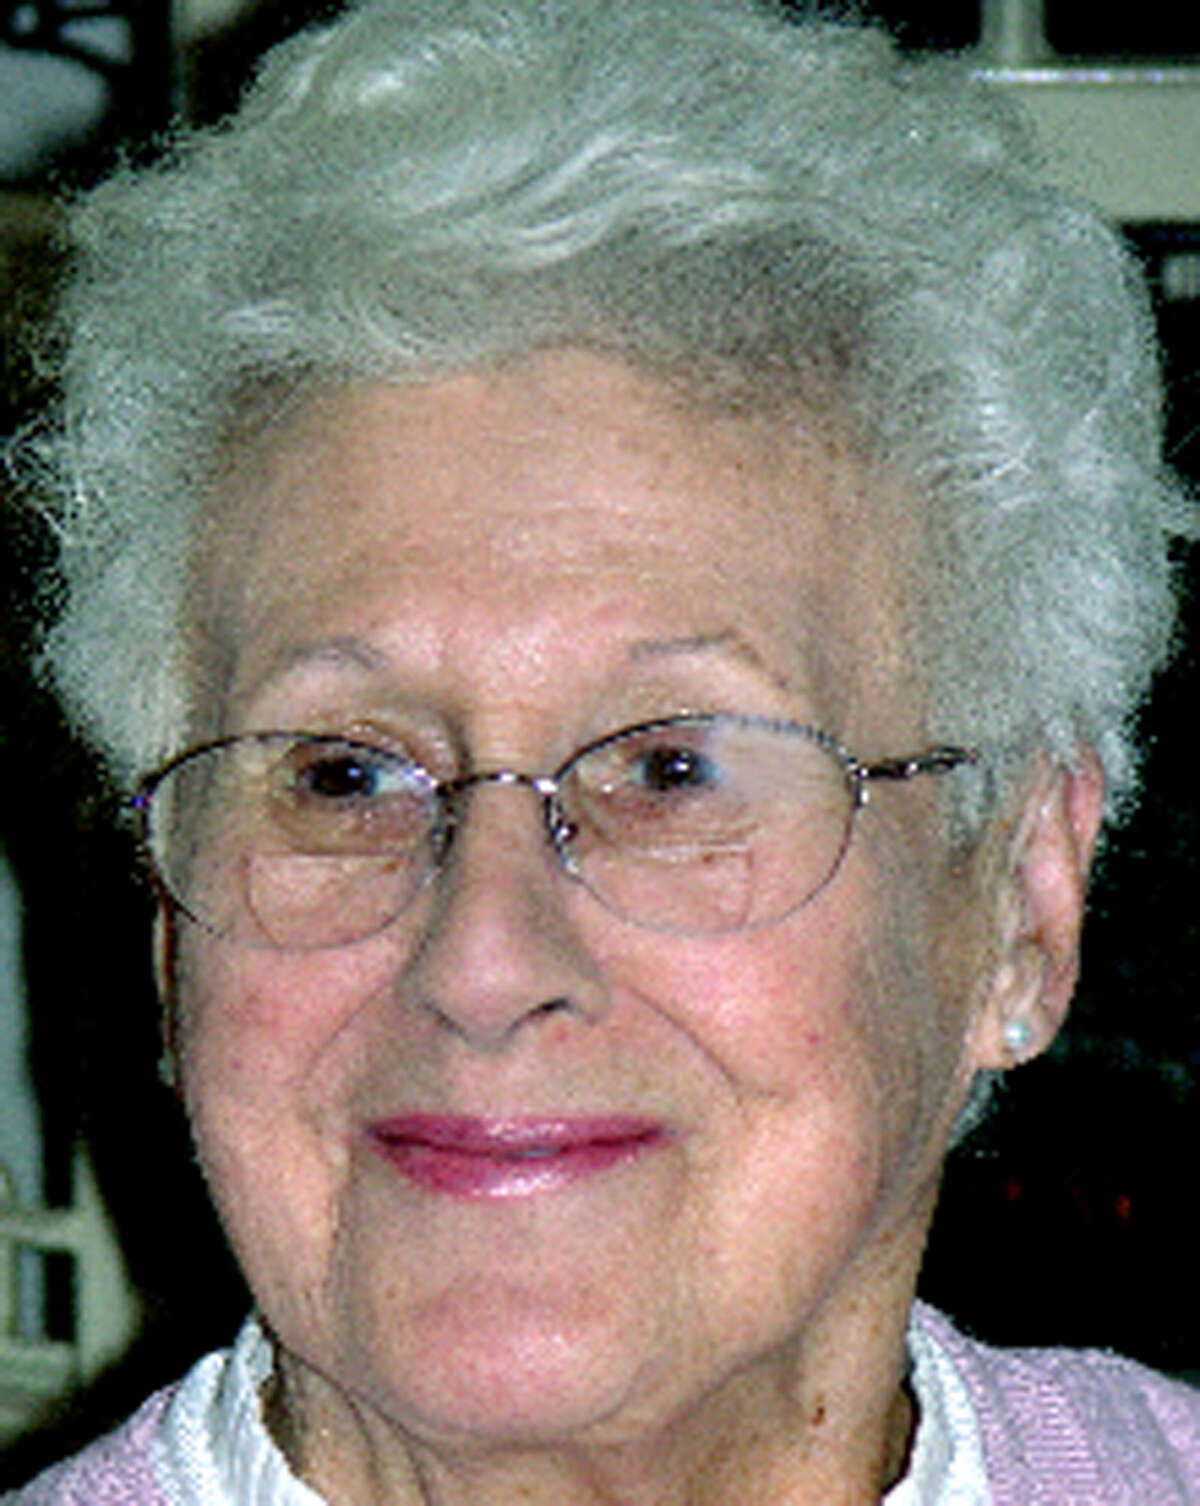 Frances L. Kershaw, 86, of New Milford, died Oct. 17 2012, in Mystic, where she was living with her daughter, Mary Olmsted, and her husband, Dwight. She was the widow of Robert A. Kershaw.